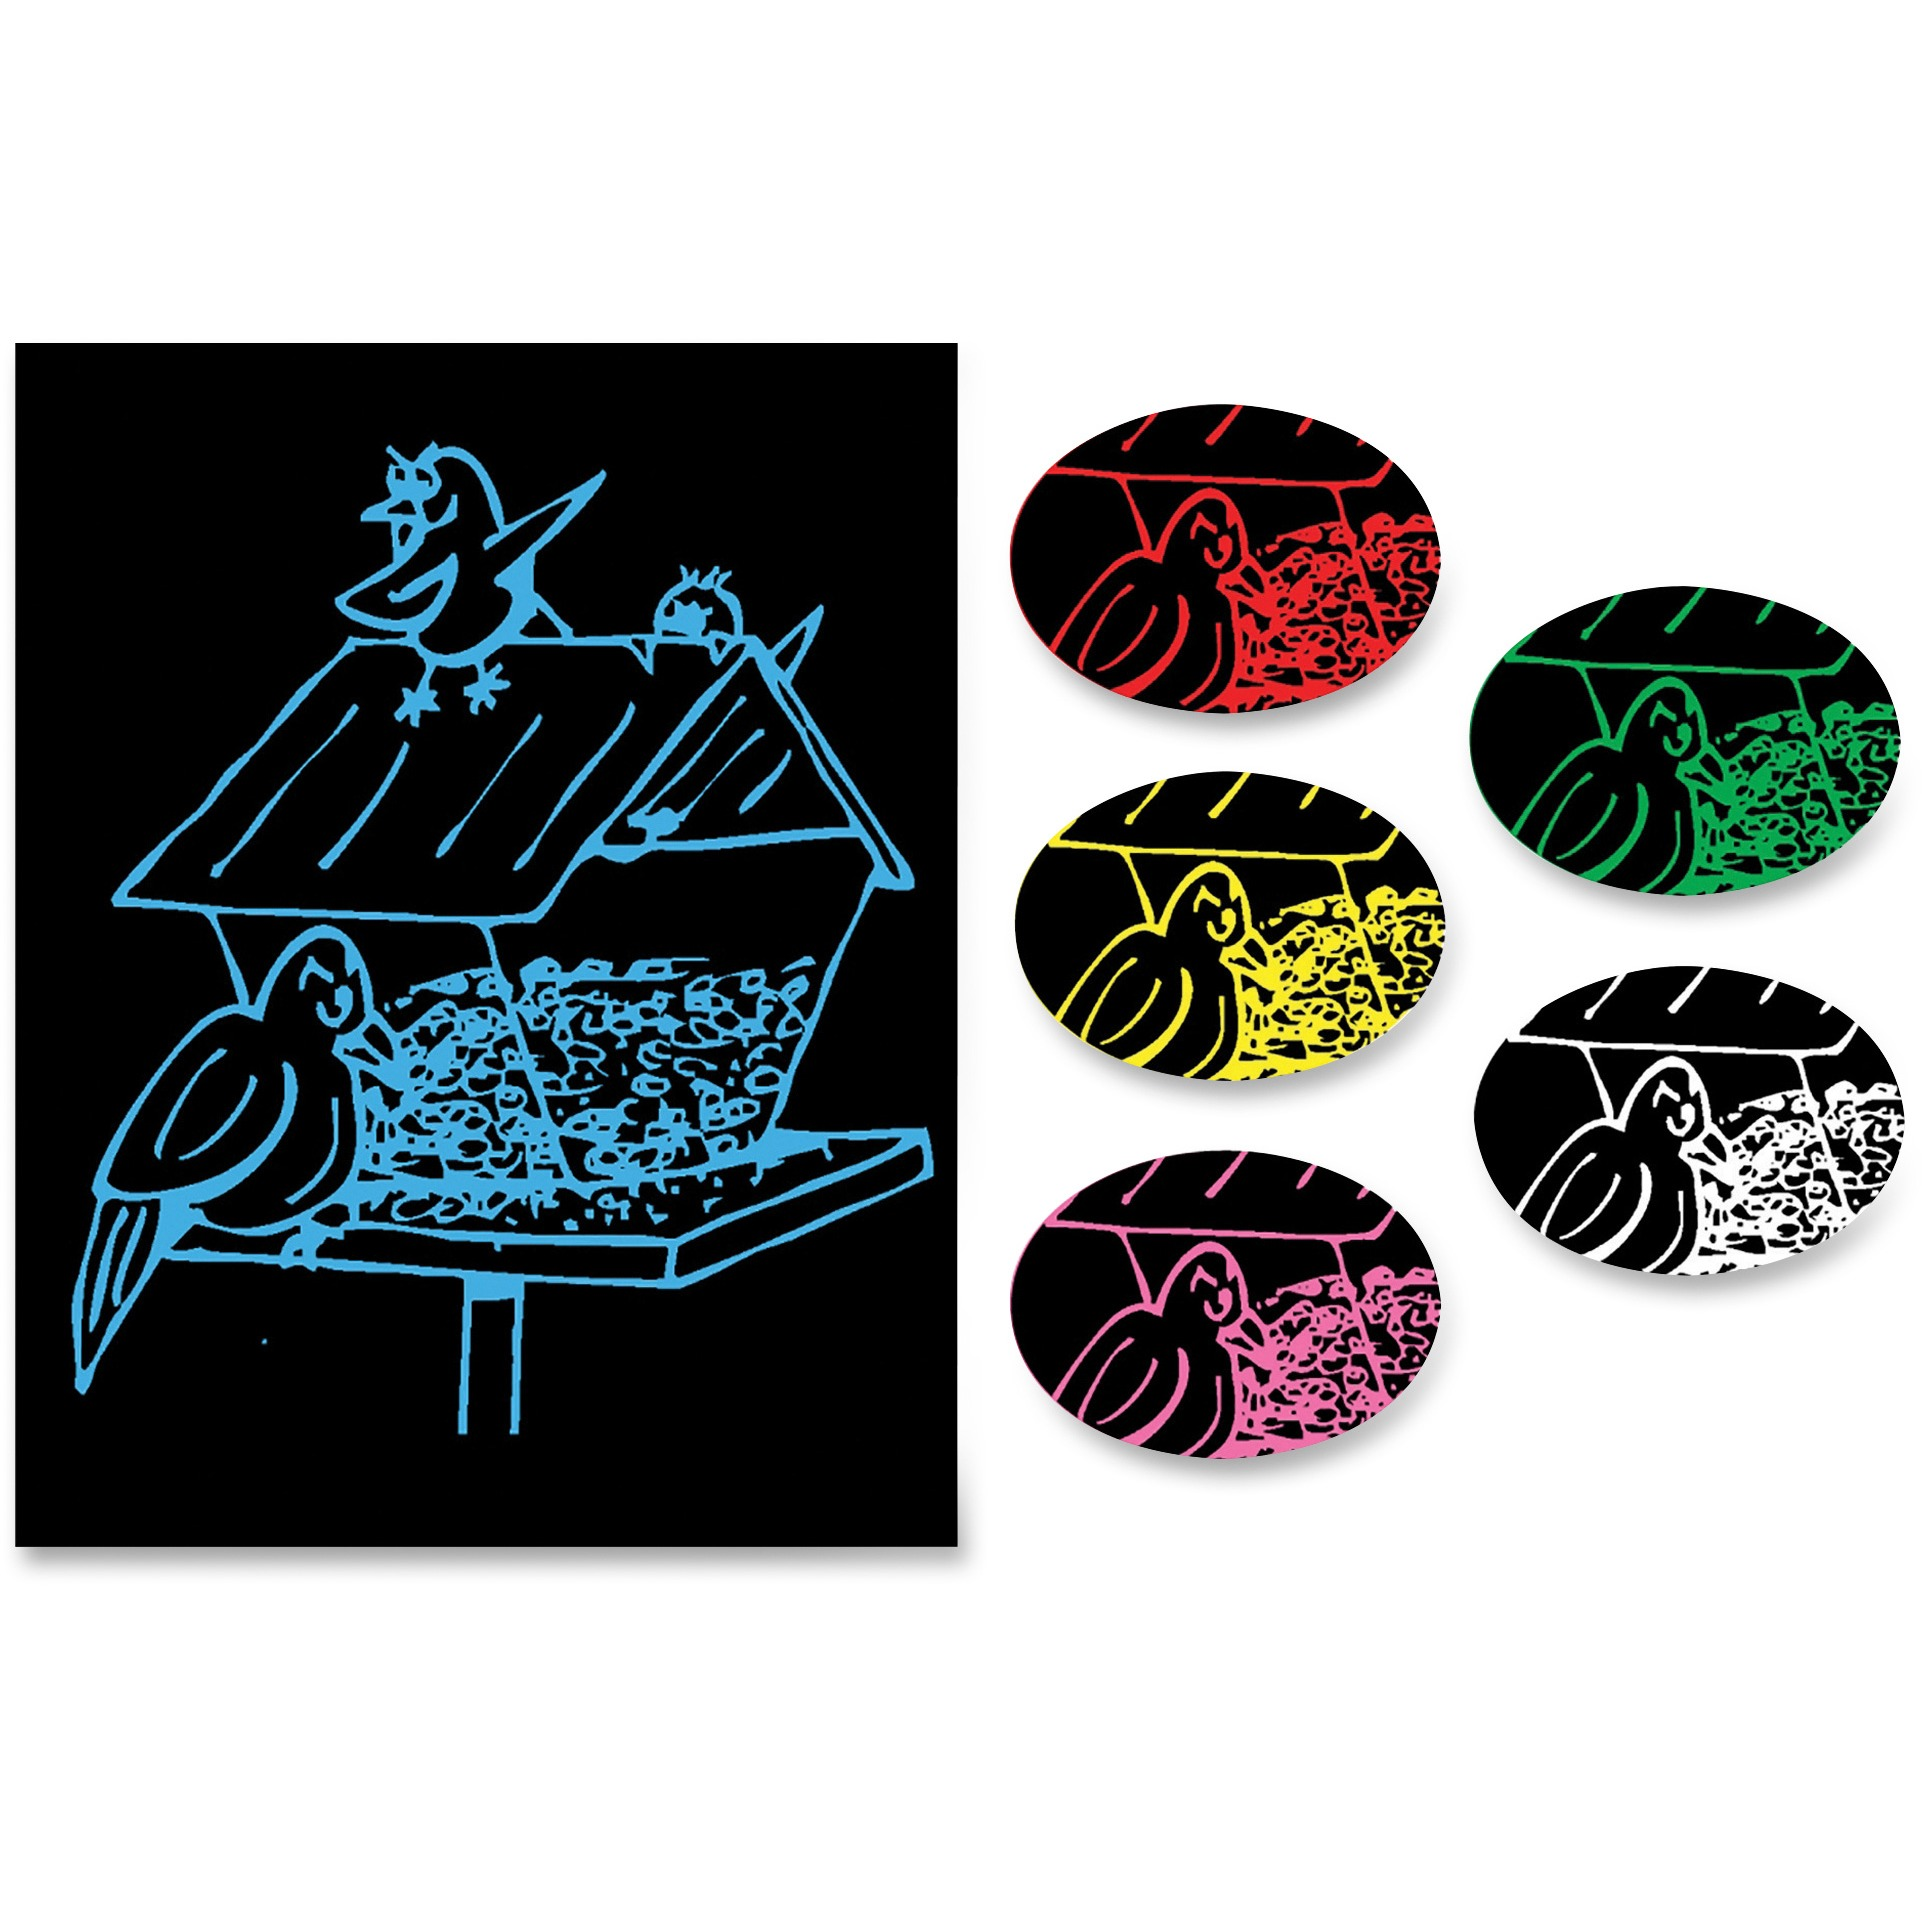 Creativity Street Now You See It! Etch Board, Red, Yellow, Blue, Pink, White, Black, 12 / Pack (Quantity)